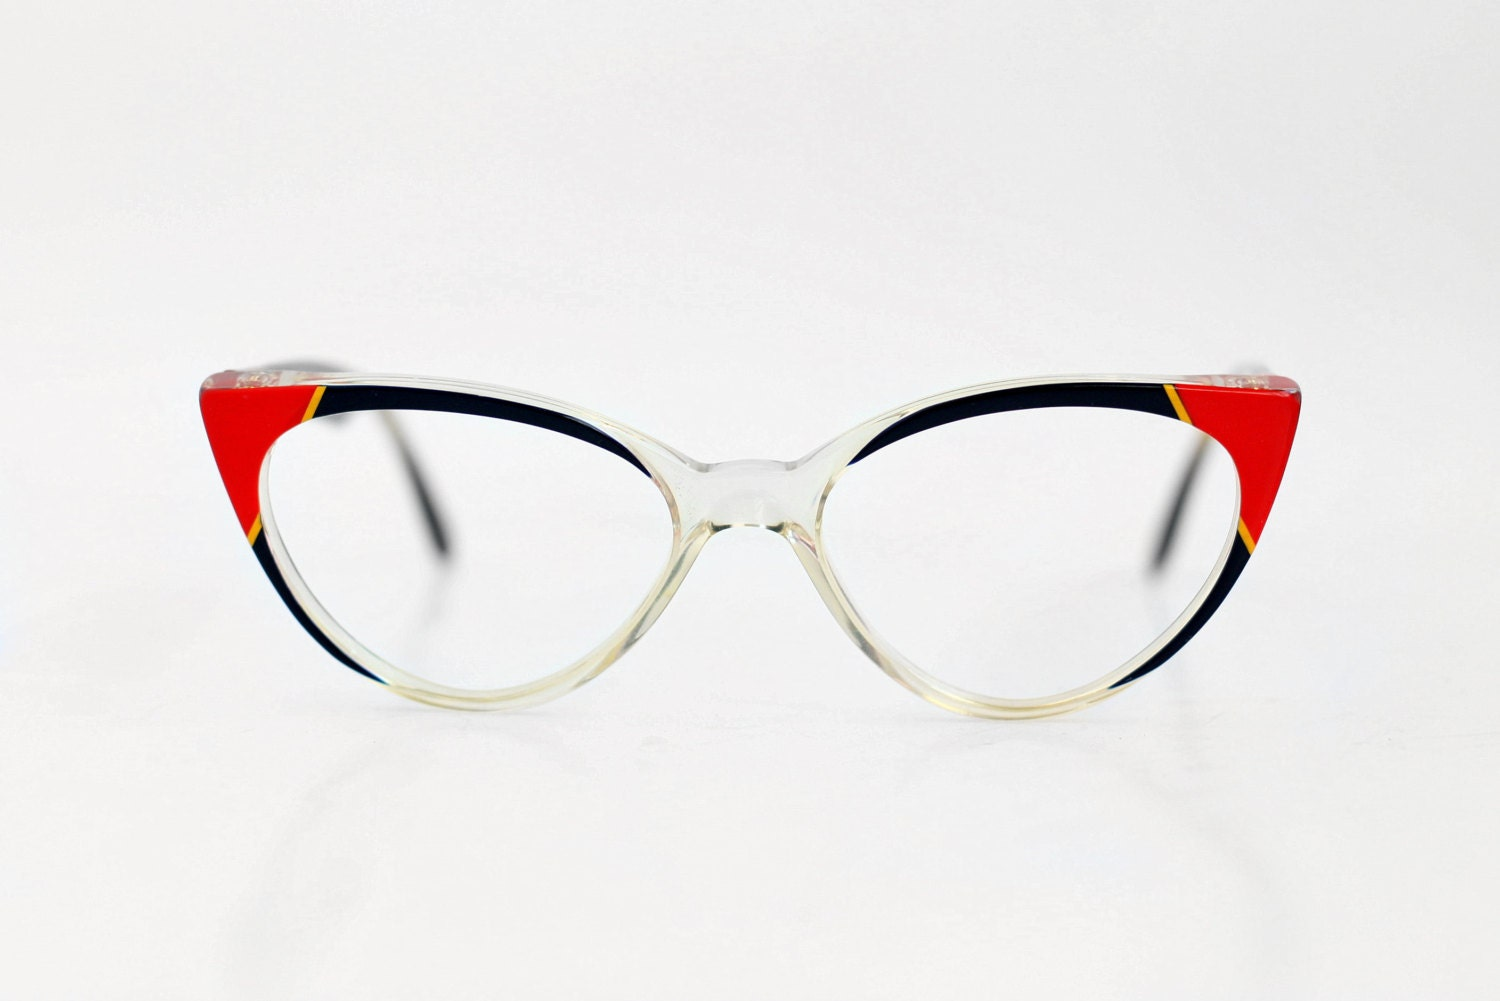 Your one-stop shop for the hottest glasses frames online Coastal makes finding glasses to suit both your vision needs and personal style a breeze.